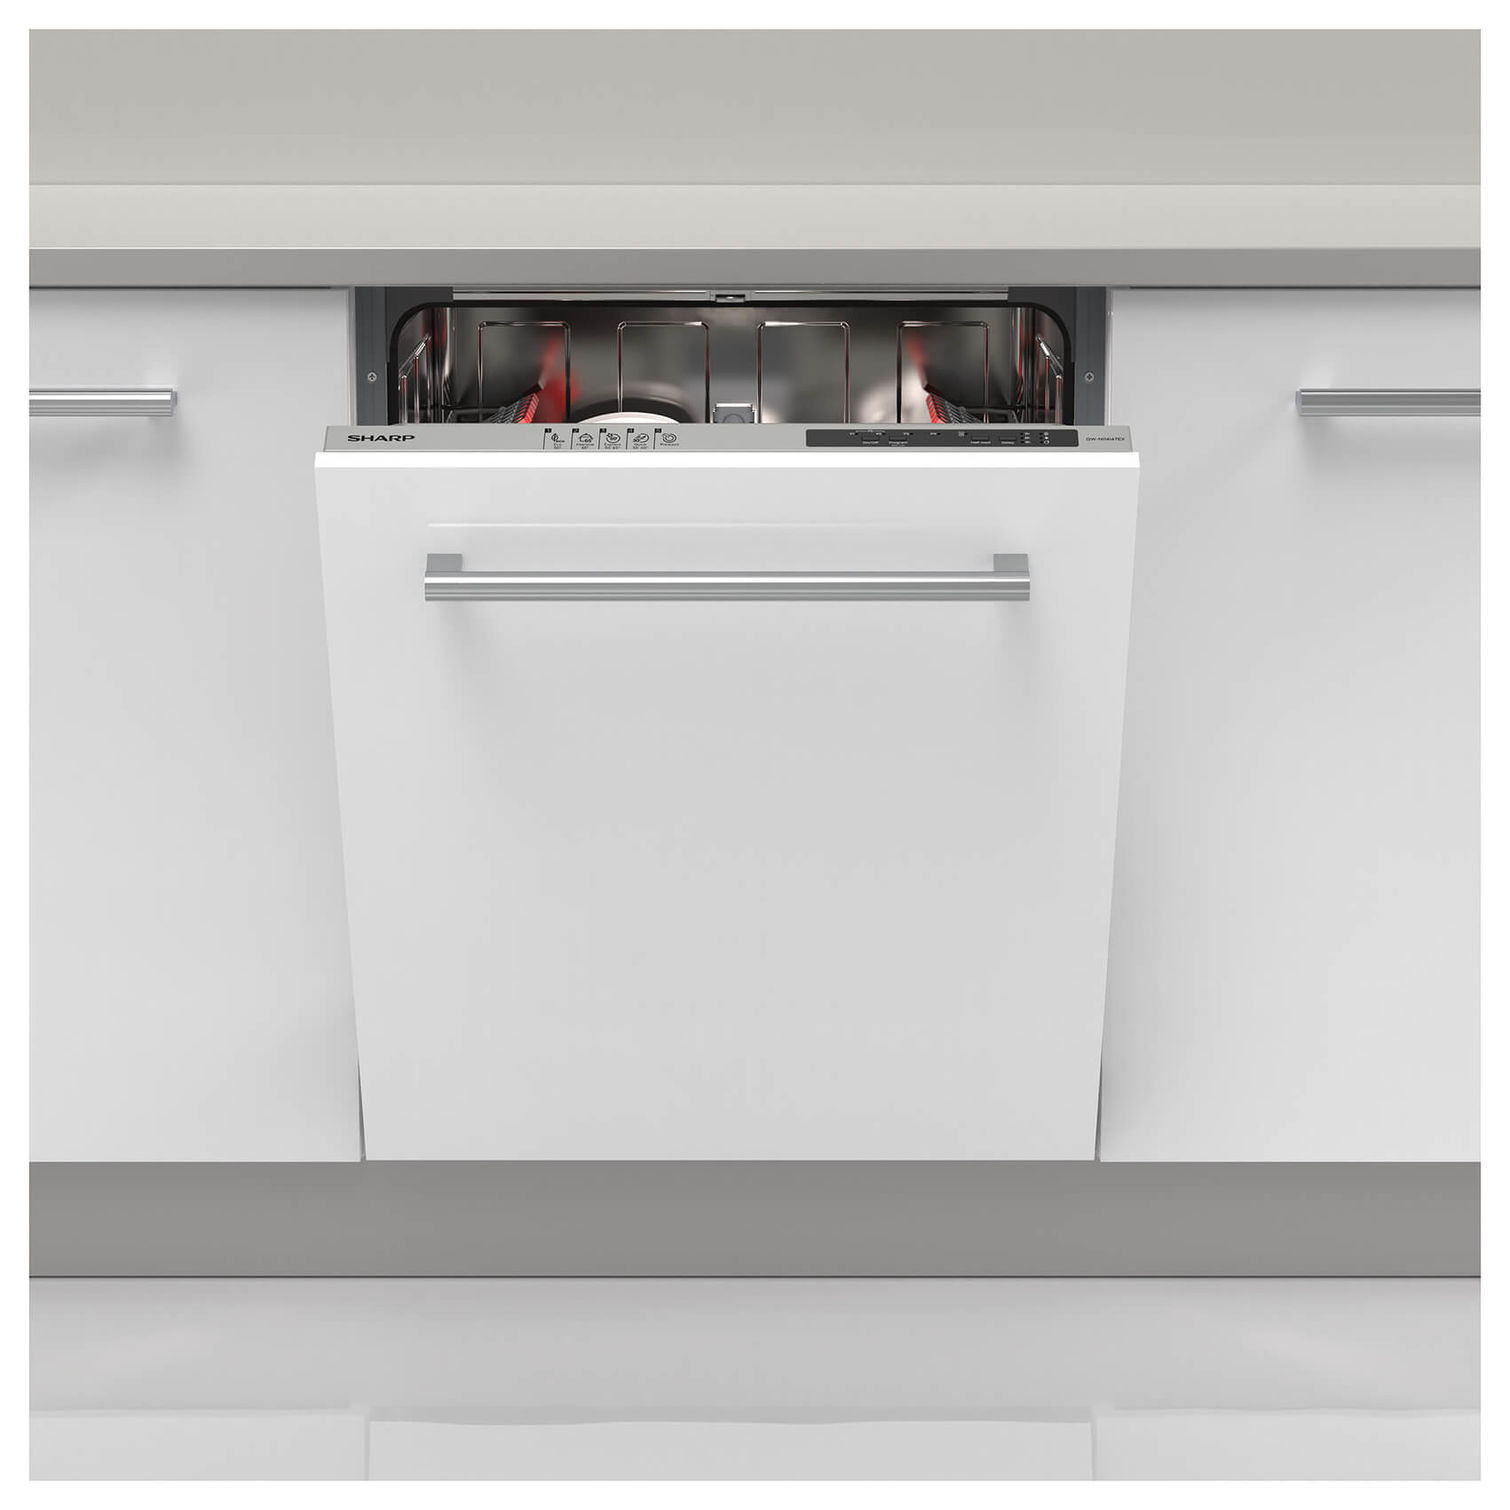 Dishwasher available from Flamingo Qormi